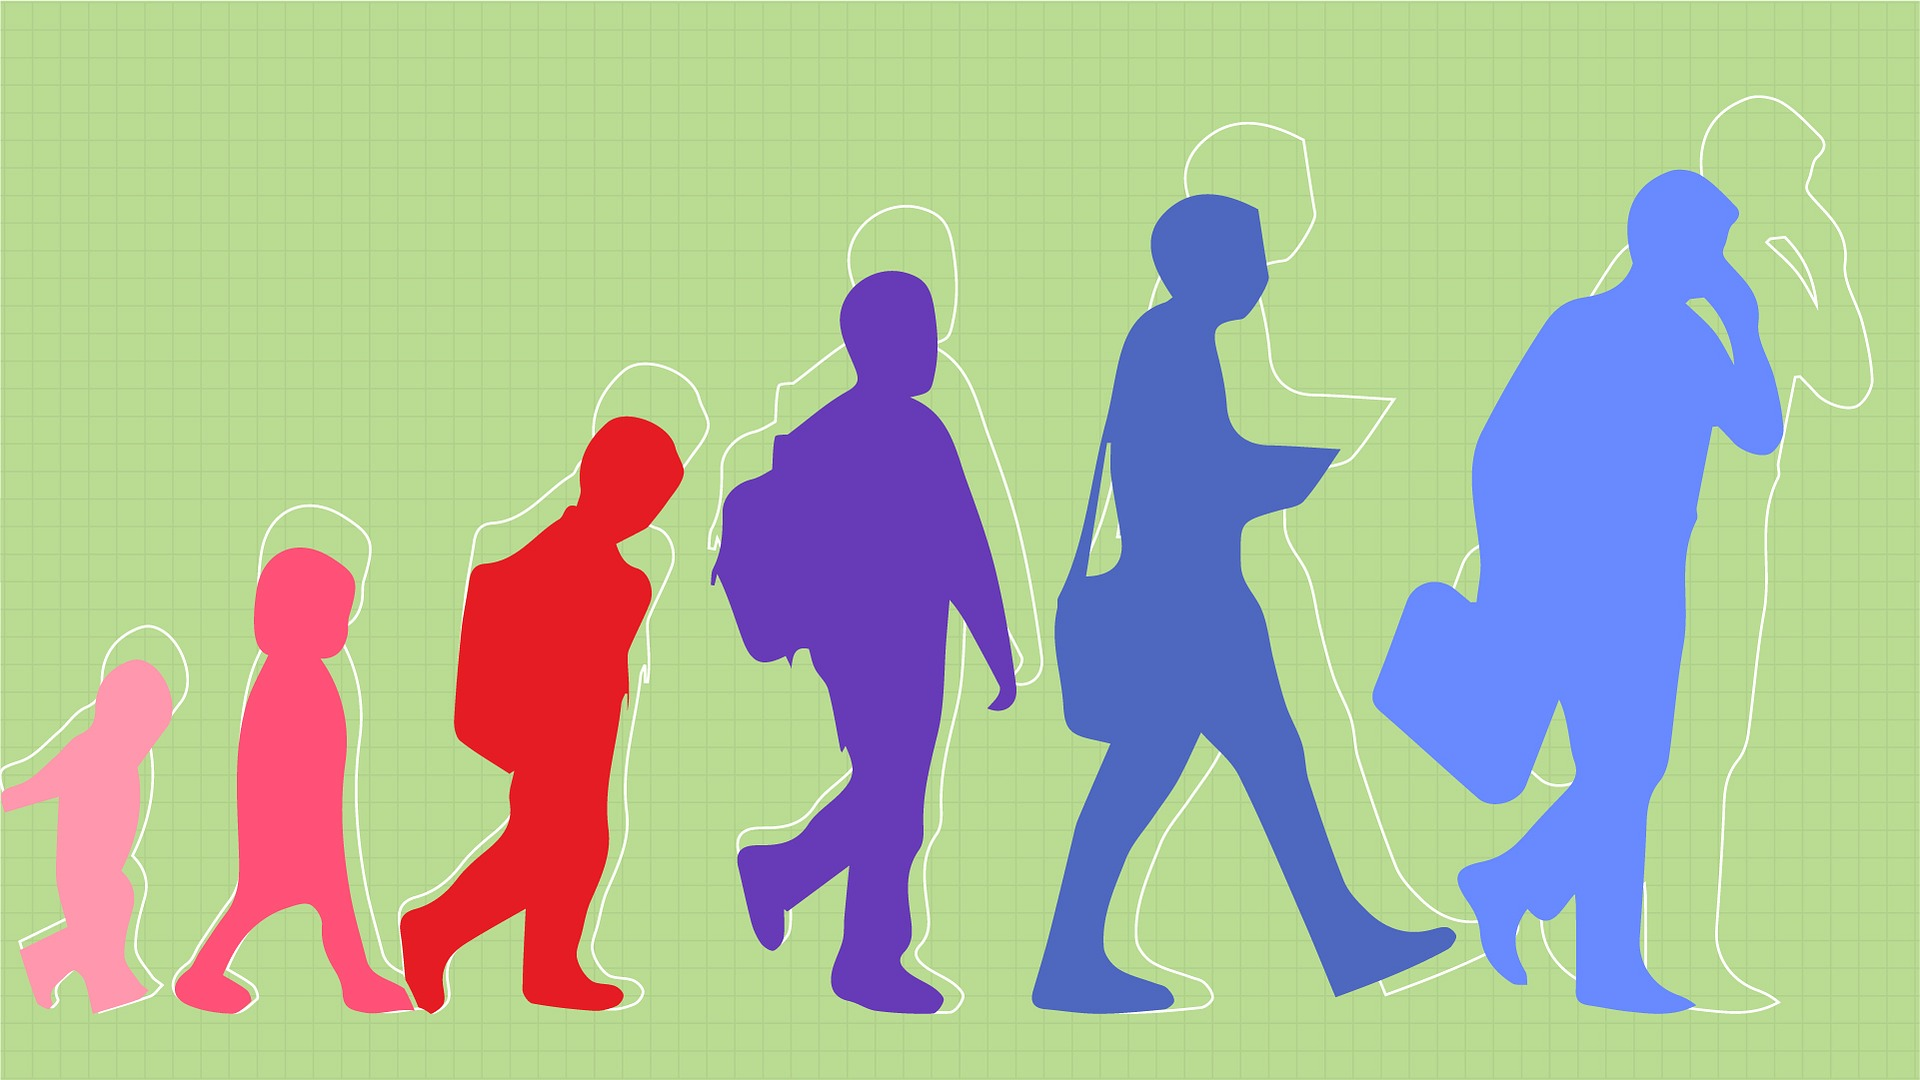 Graphic of stages of human growth from infancy to adulthood